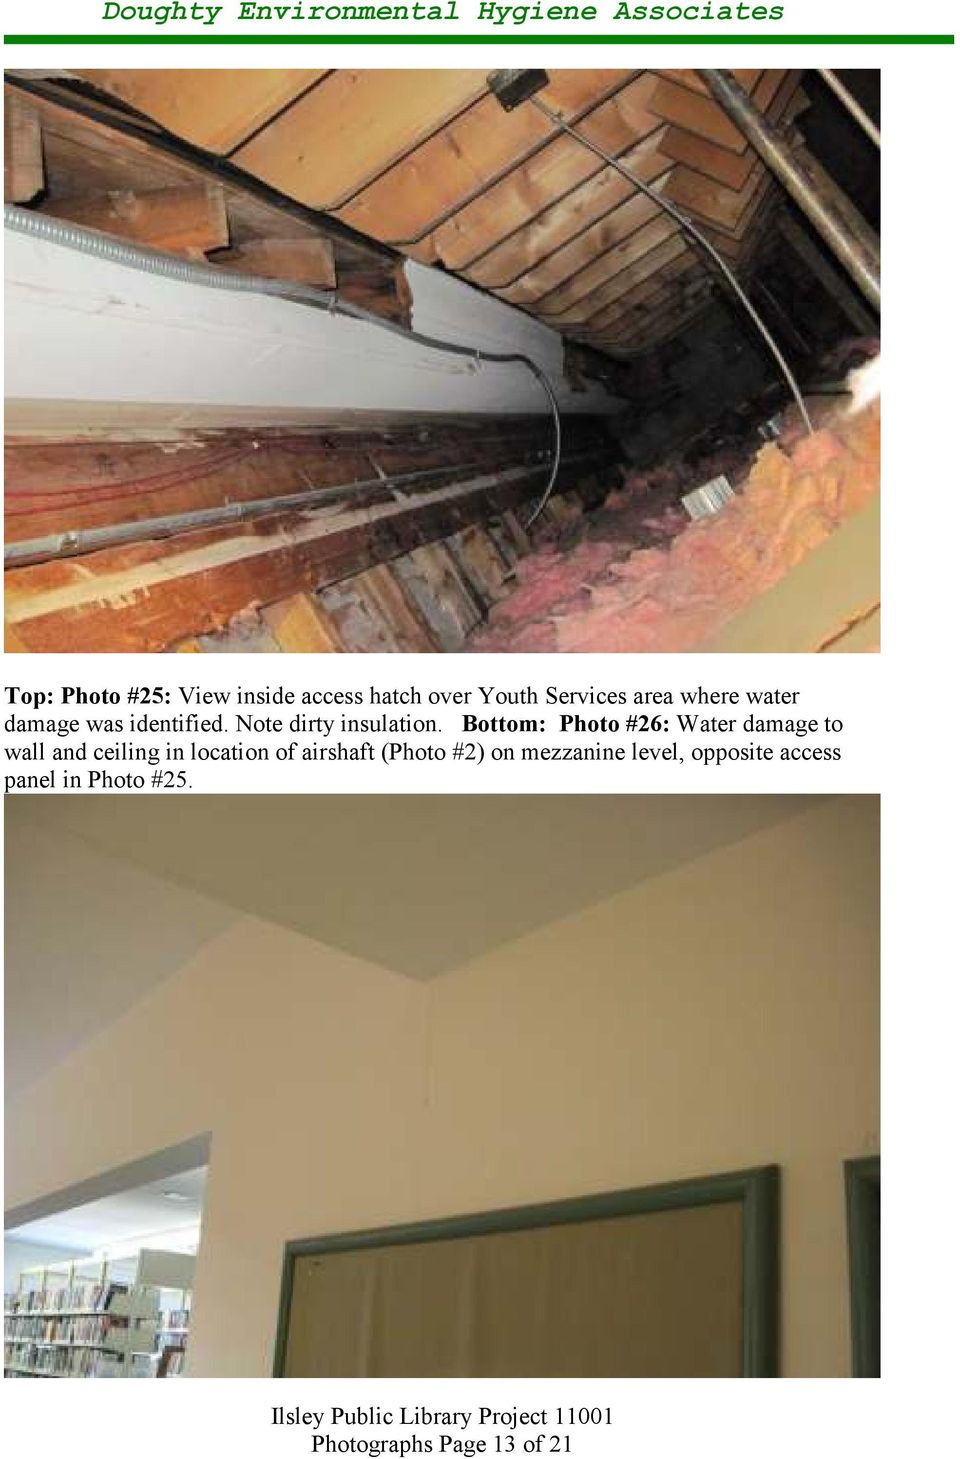 Bottom: Photo #26: Water damage to wall and ceiling in location of